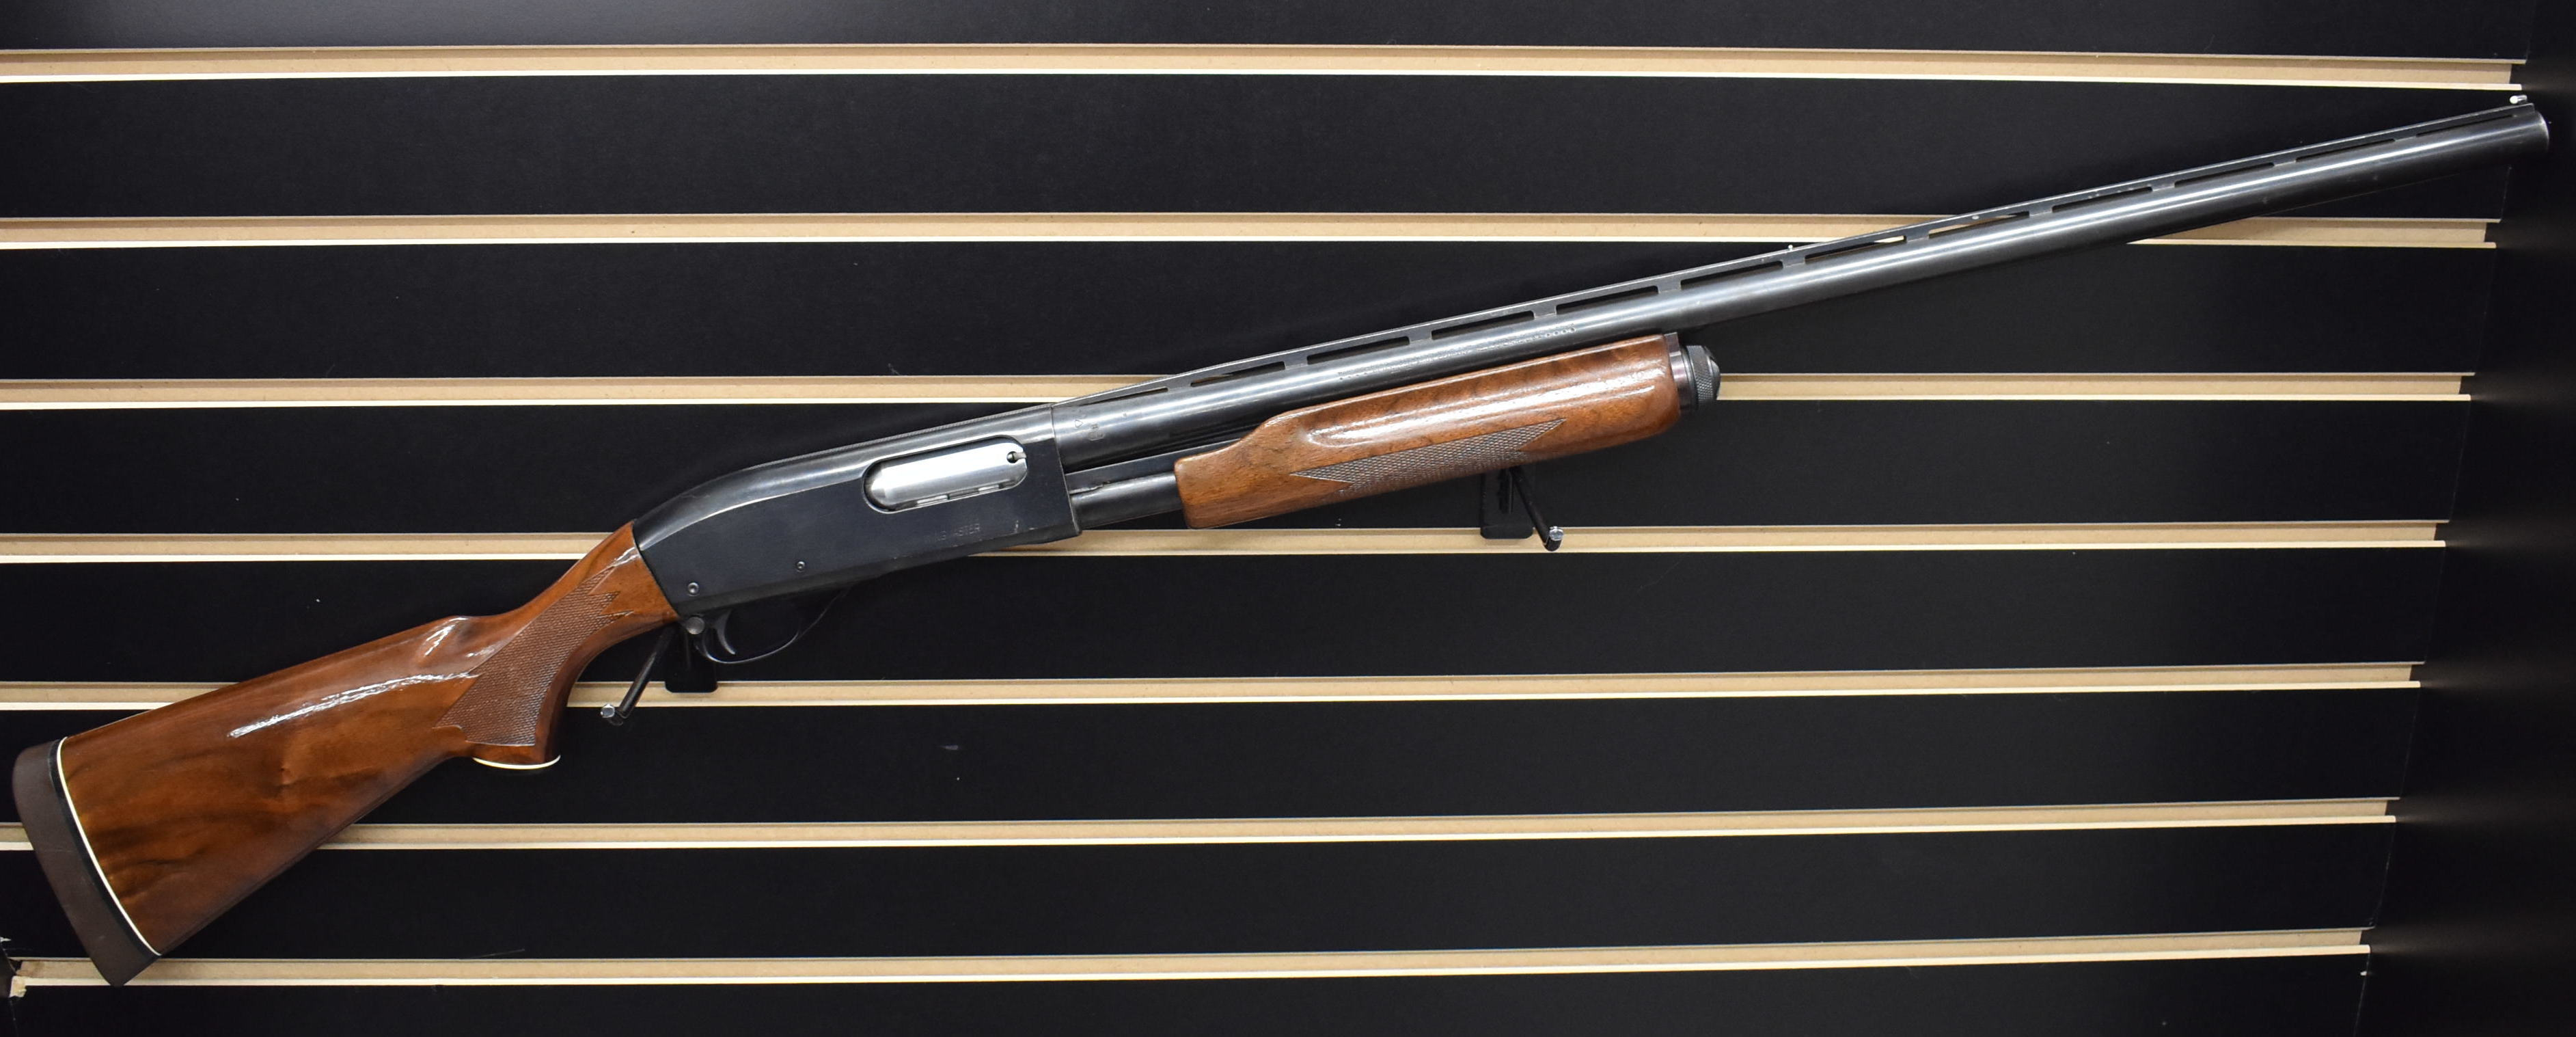 REMINGTON ARMS - 870 MAGNUM - SHOTGUN FIREARM